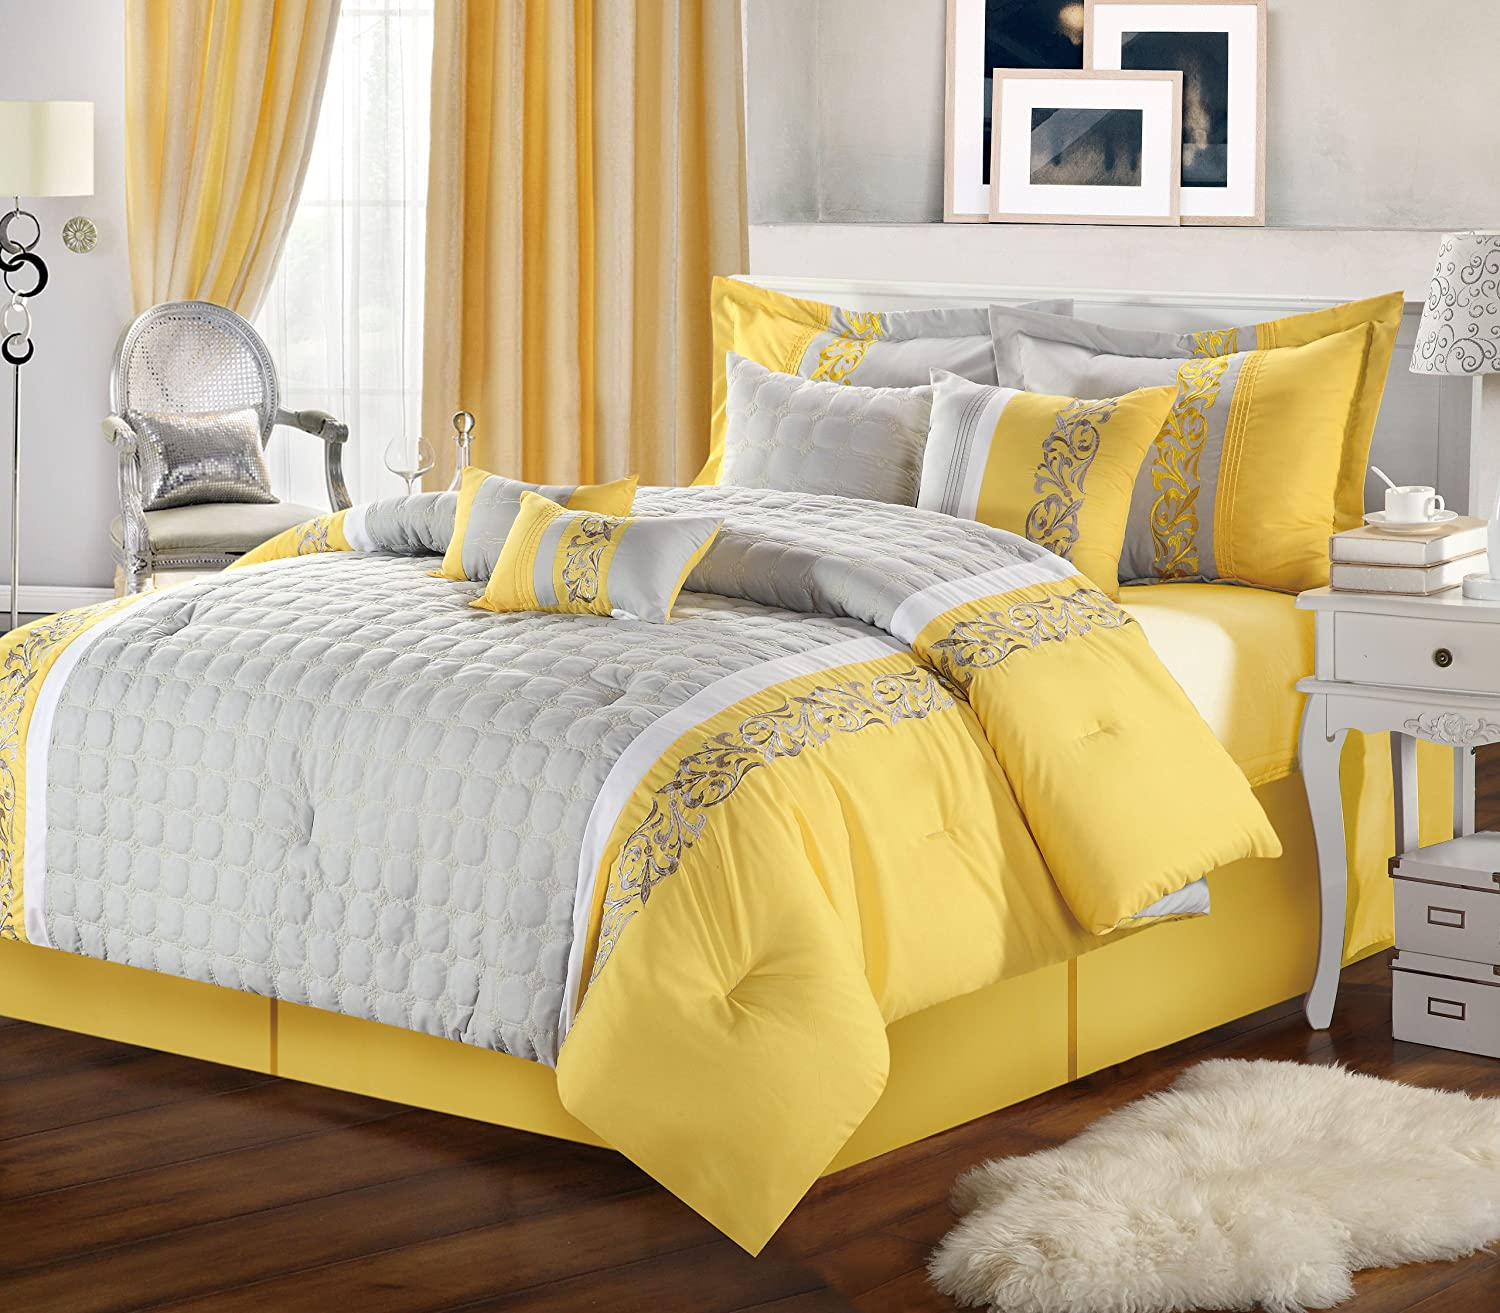 Bloombety Yellow Orange Paint Colors Bedroom Furniture